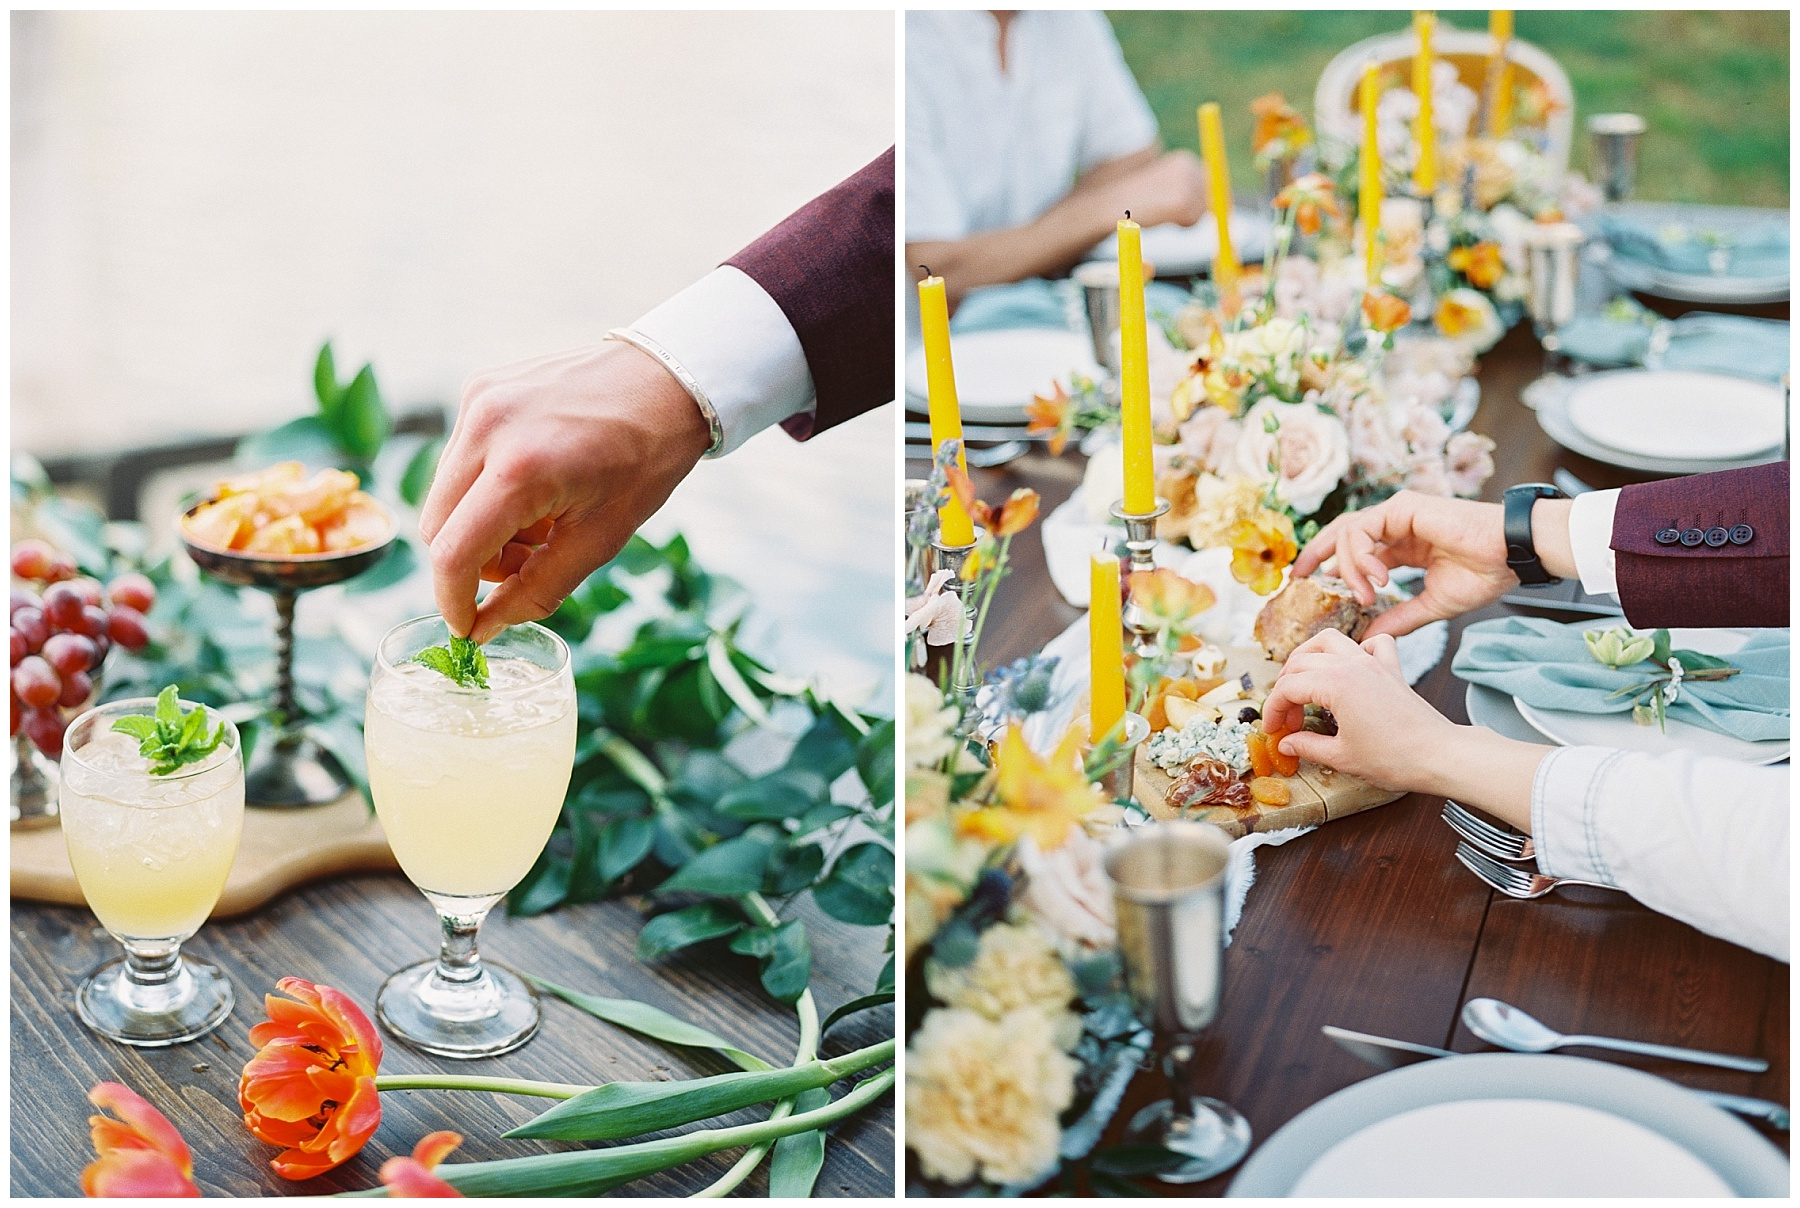 Intimate Spanish and French Inspired Destination Wedding with Lakeside Dinner Party at Dusk at Wildcliff by Kelsi Kliethermes Photography Best Missouri and Maui Wedding Photographer_0028.jpg